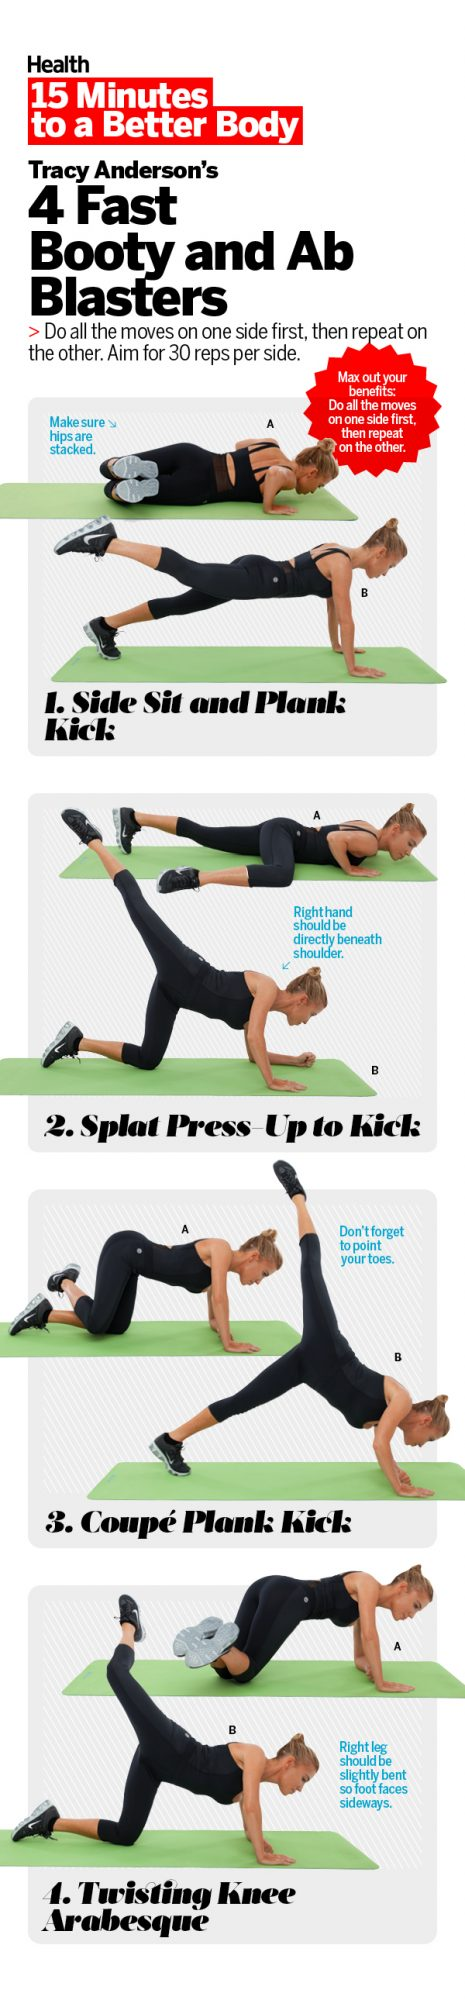 Pin It: Tracy Anderson Butt Workout